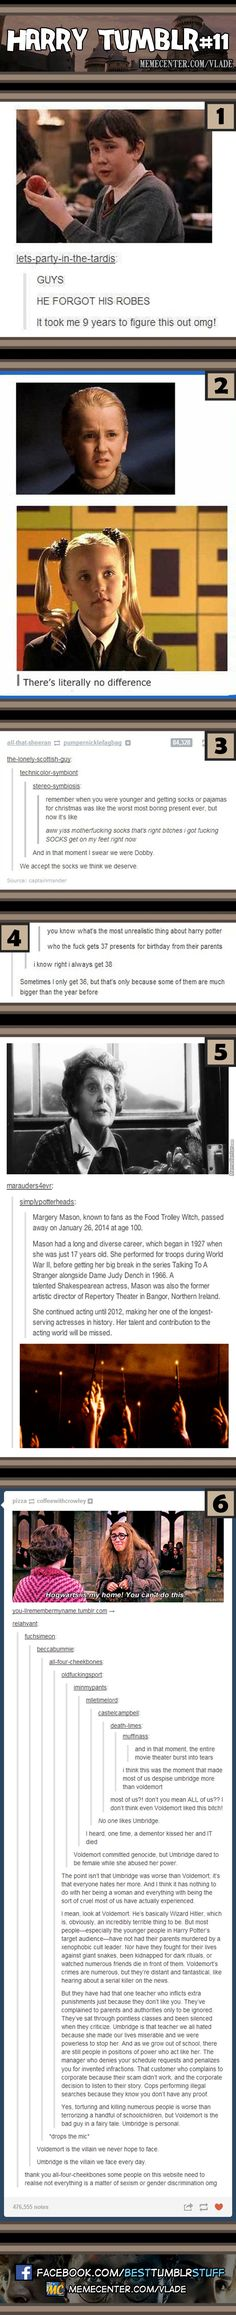 Harry potter. The last one though. Seriously! We don't hate Umbridge because she is a woman and whoever suggested that needs to take a step back and rethink their life decisions.